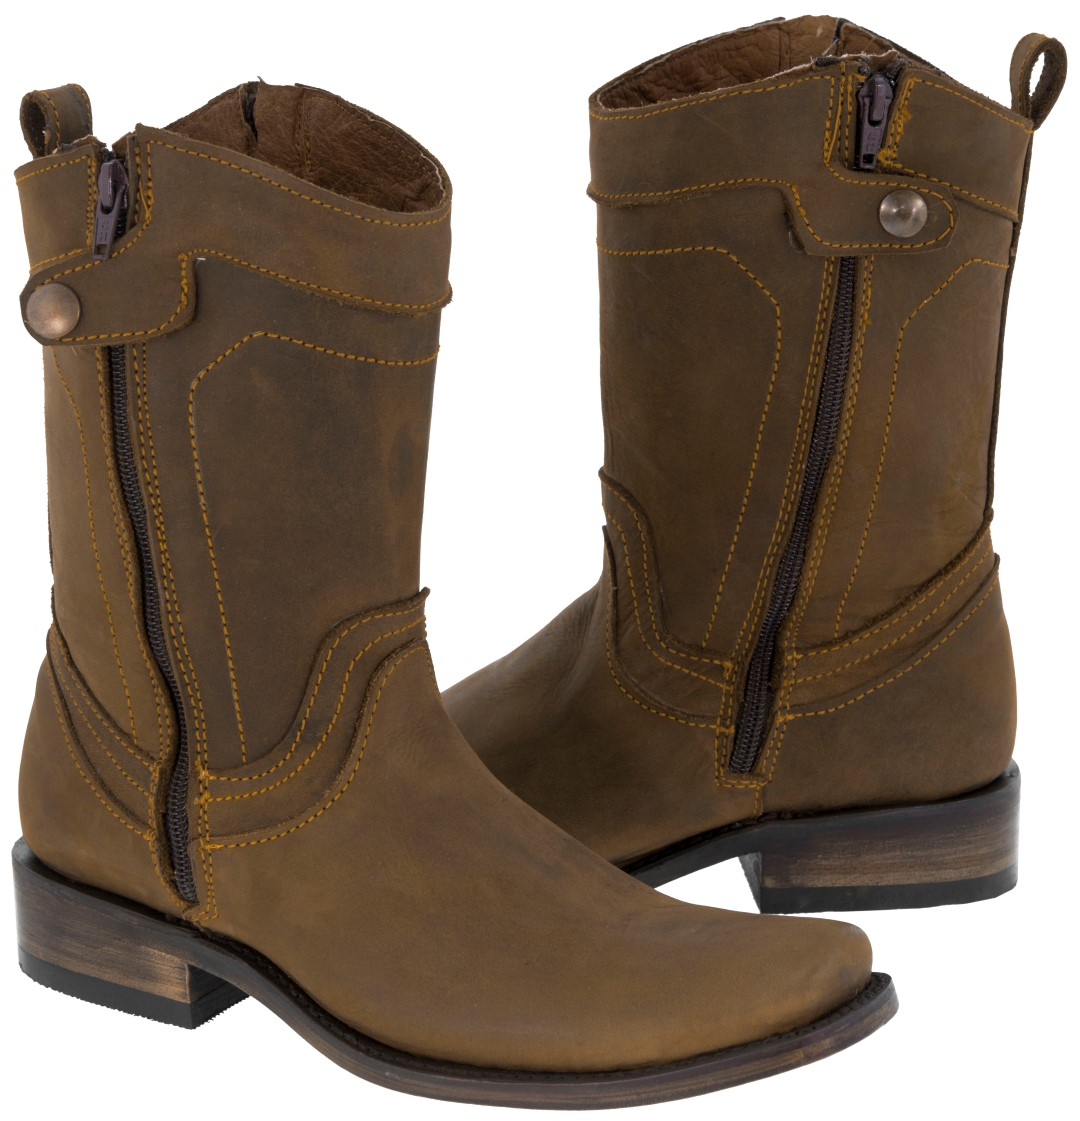 mens smooth brown genuine leather zipper boots western biker riding rodeo boots